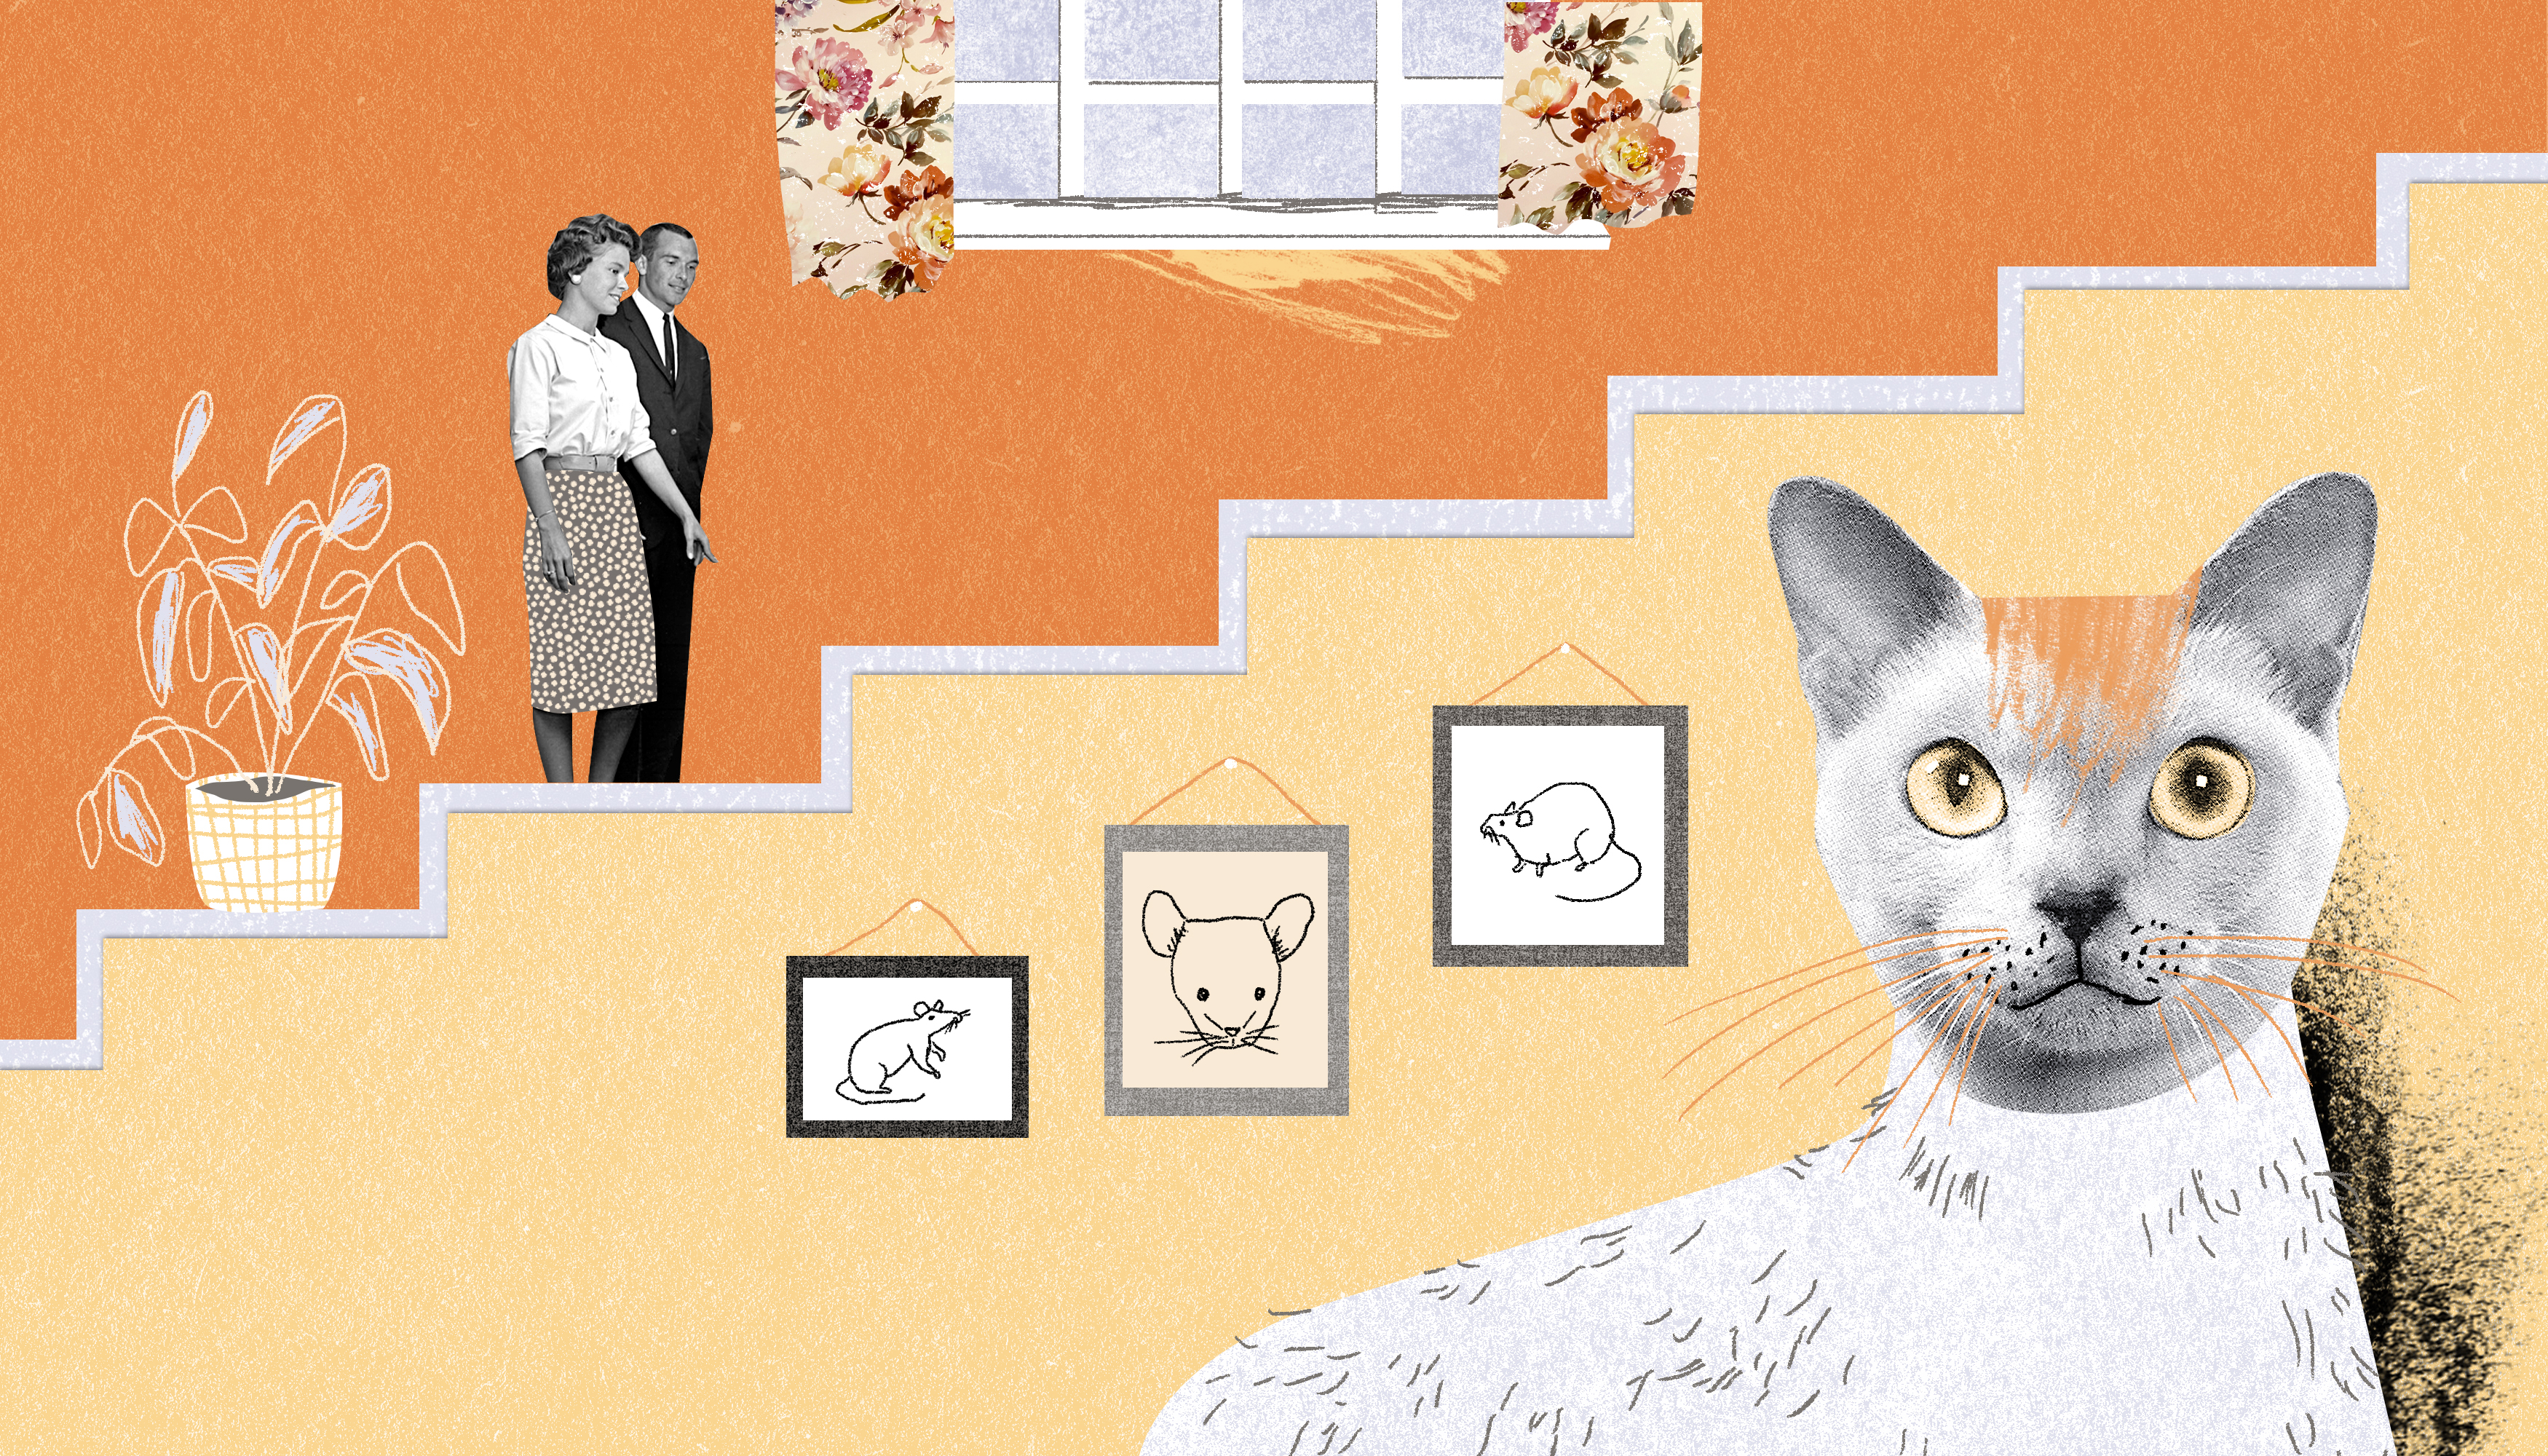 A house cat sits in the foreground with a couple on a set of stairs in the background. On the stairs there is a potted plant, and above the stairs there is a window with floral curtains. Illustration.